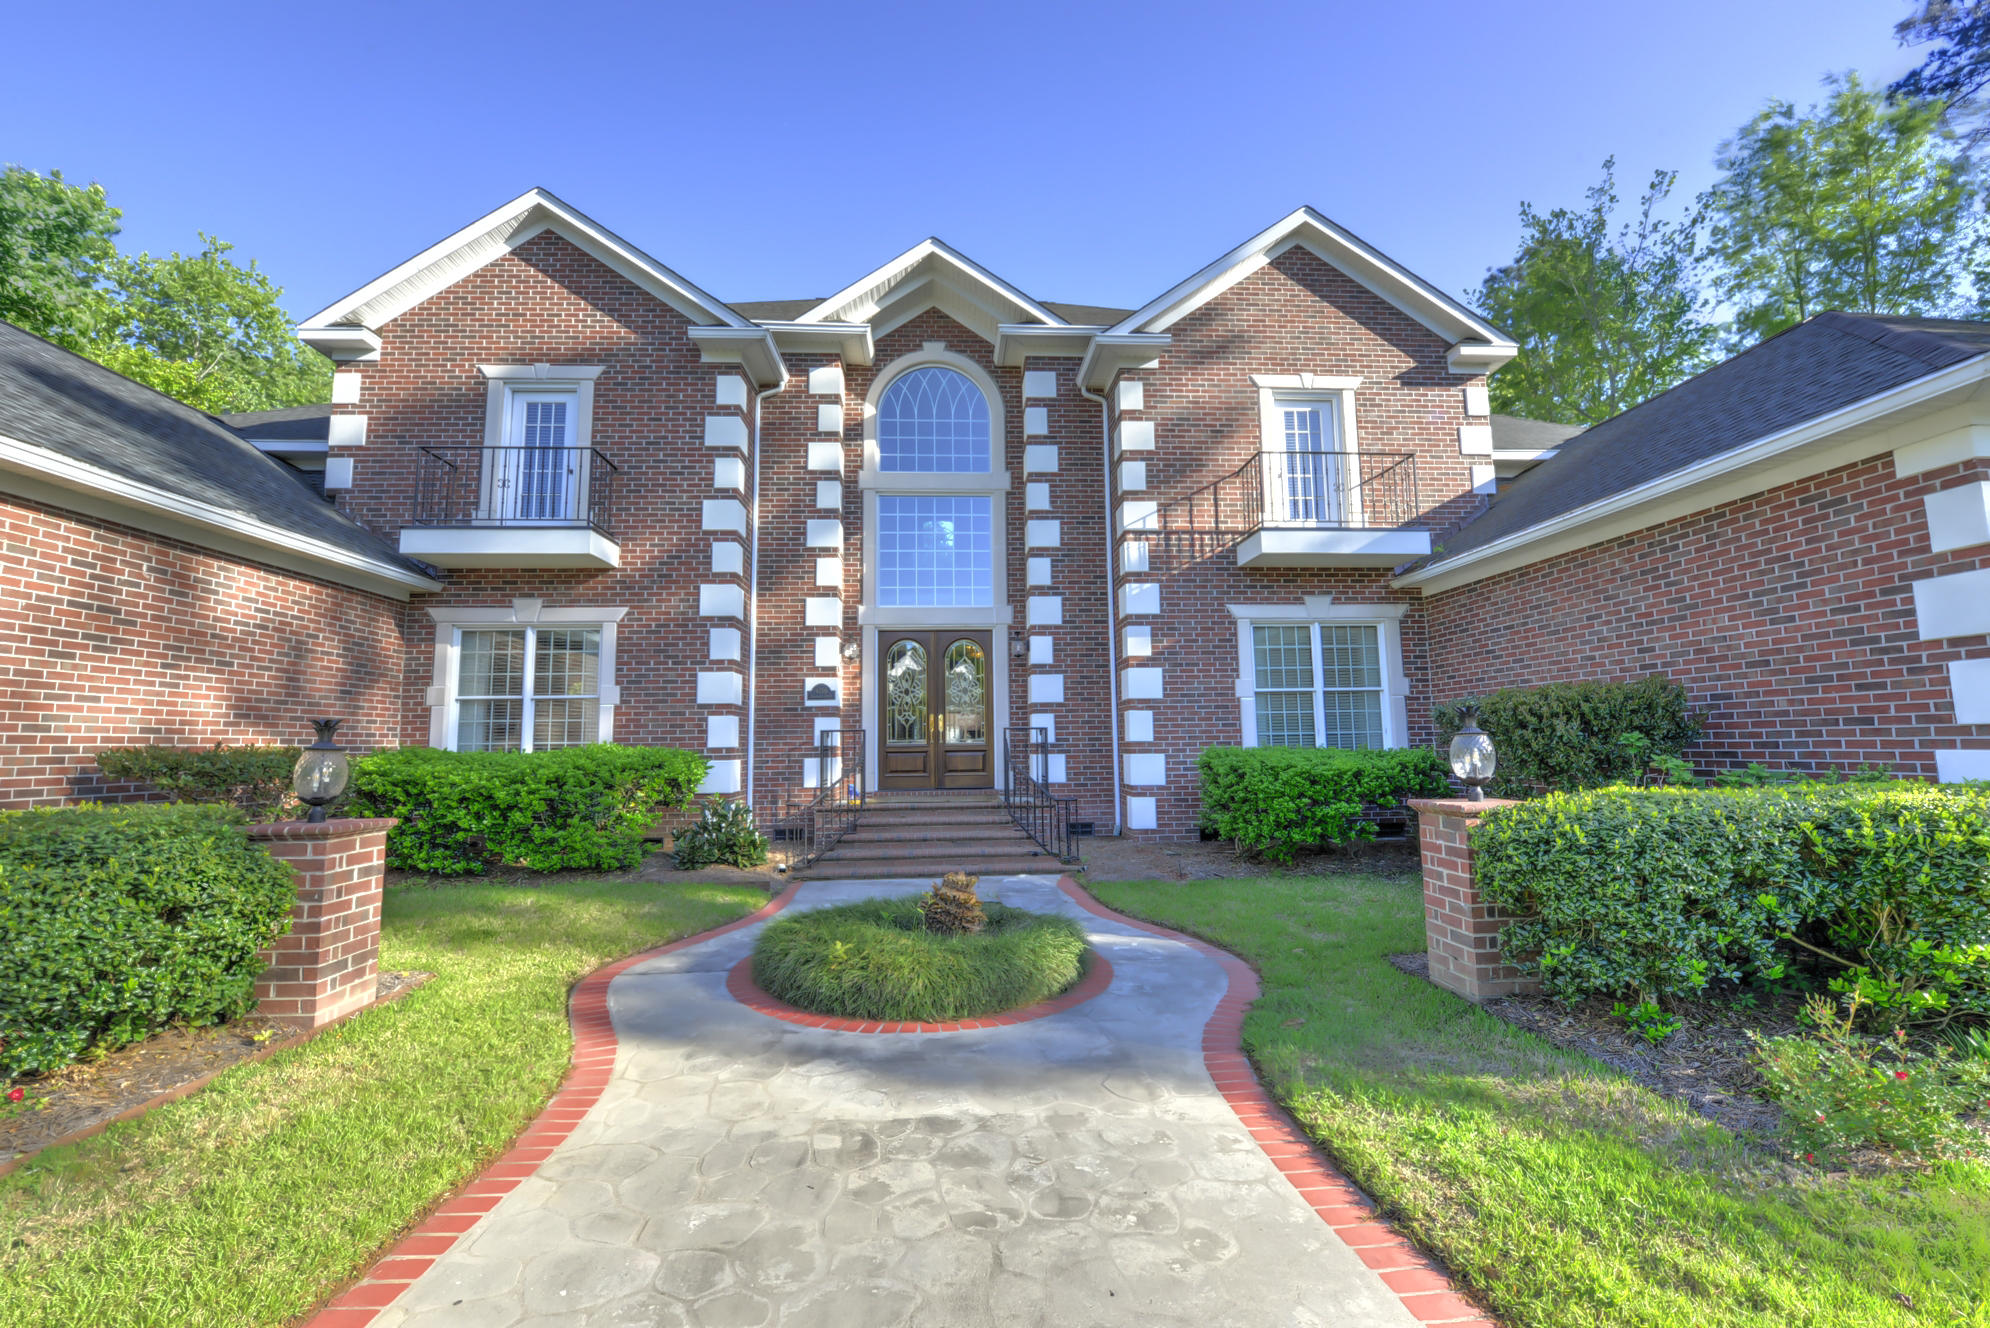 Photo of 4216 Sawgrass Dr, Charleston, SC 29420